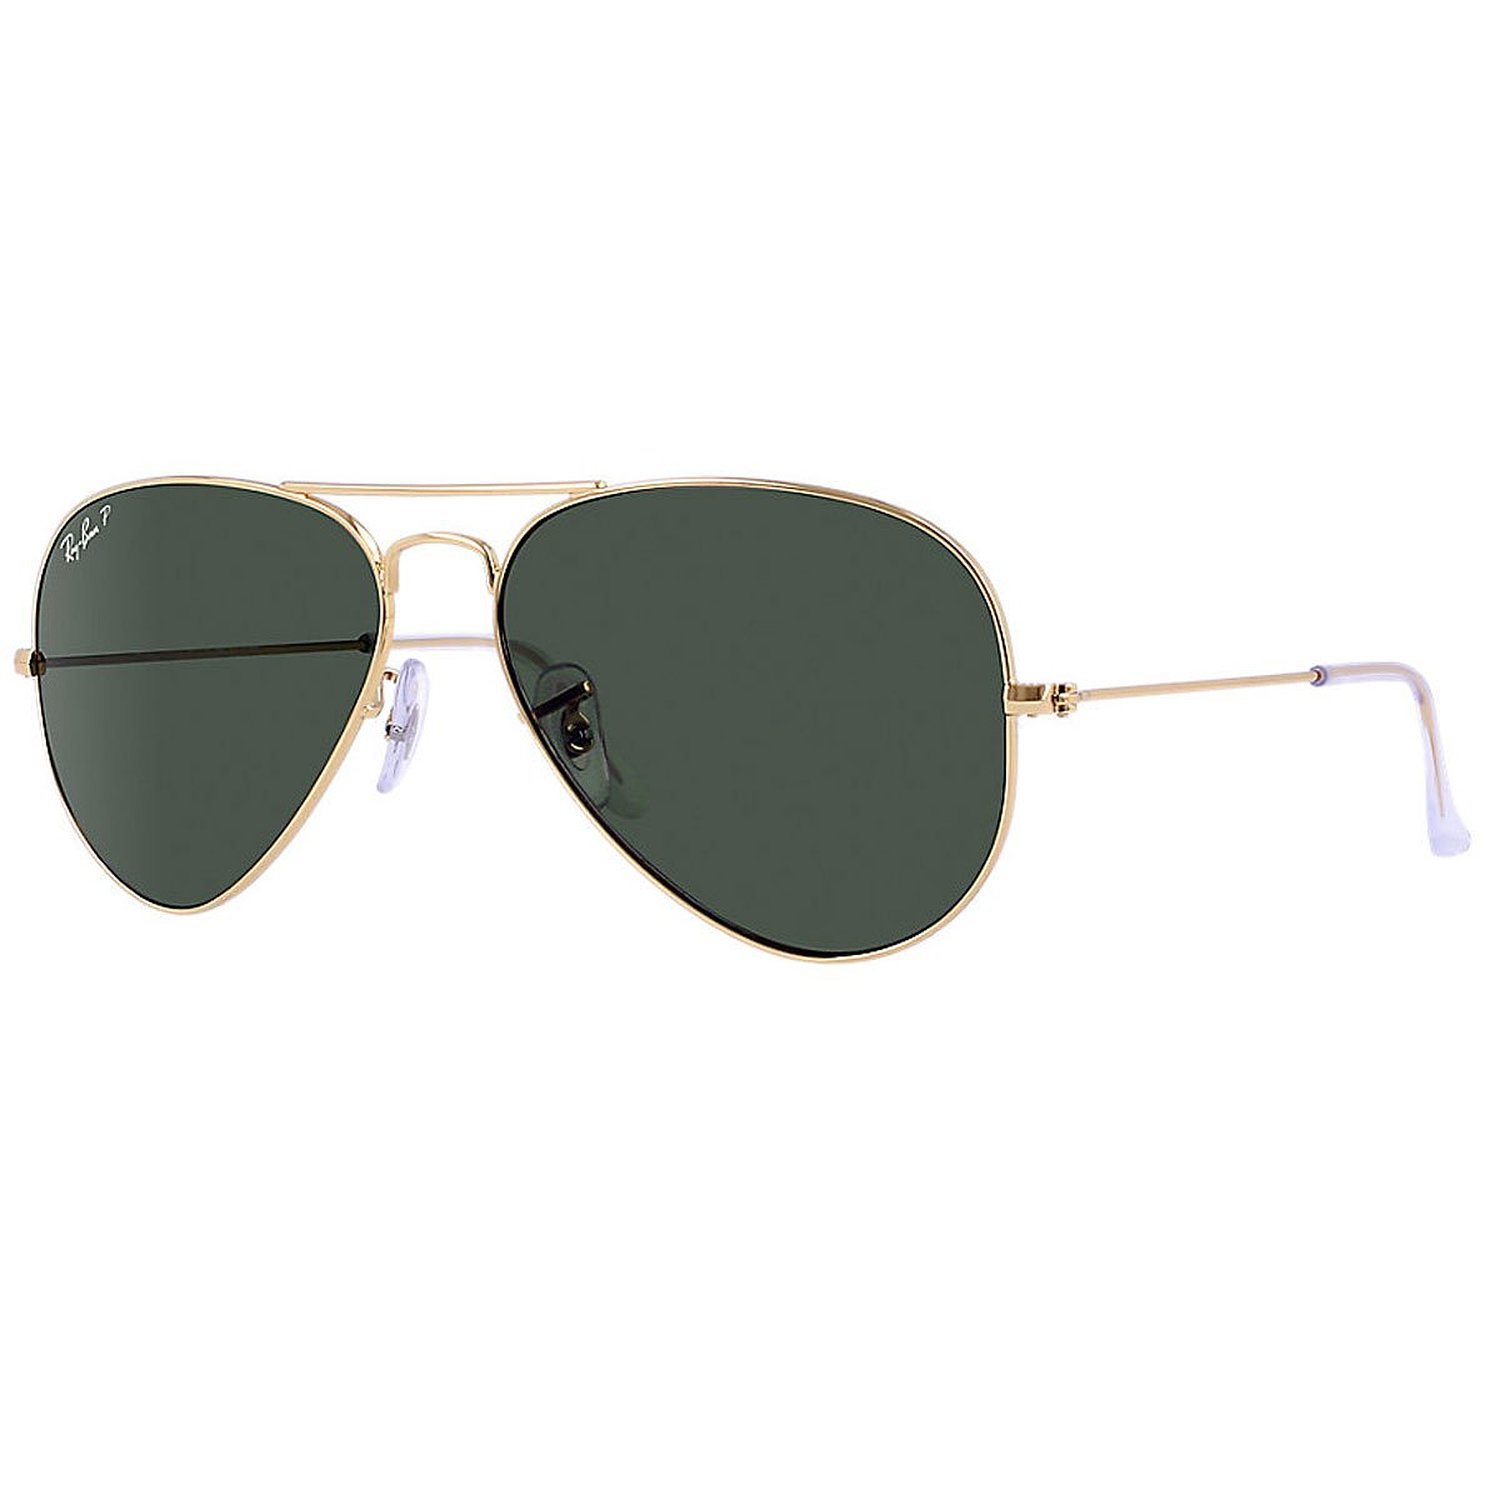 c612700f1ad Discount Ray Bans Polarized Aviators « Heritage Malta